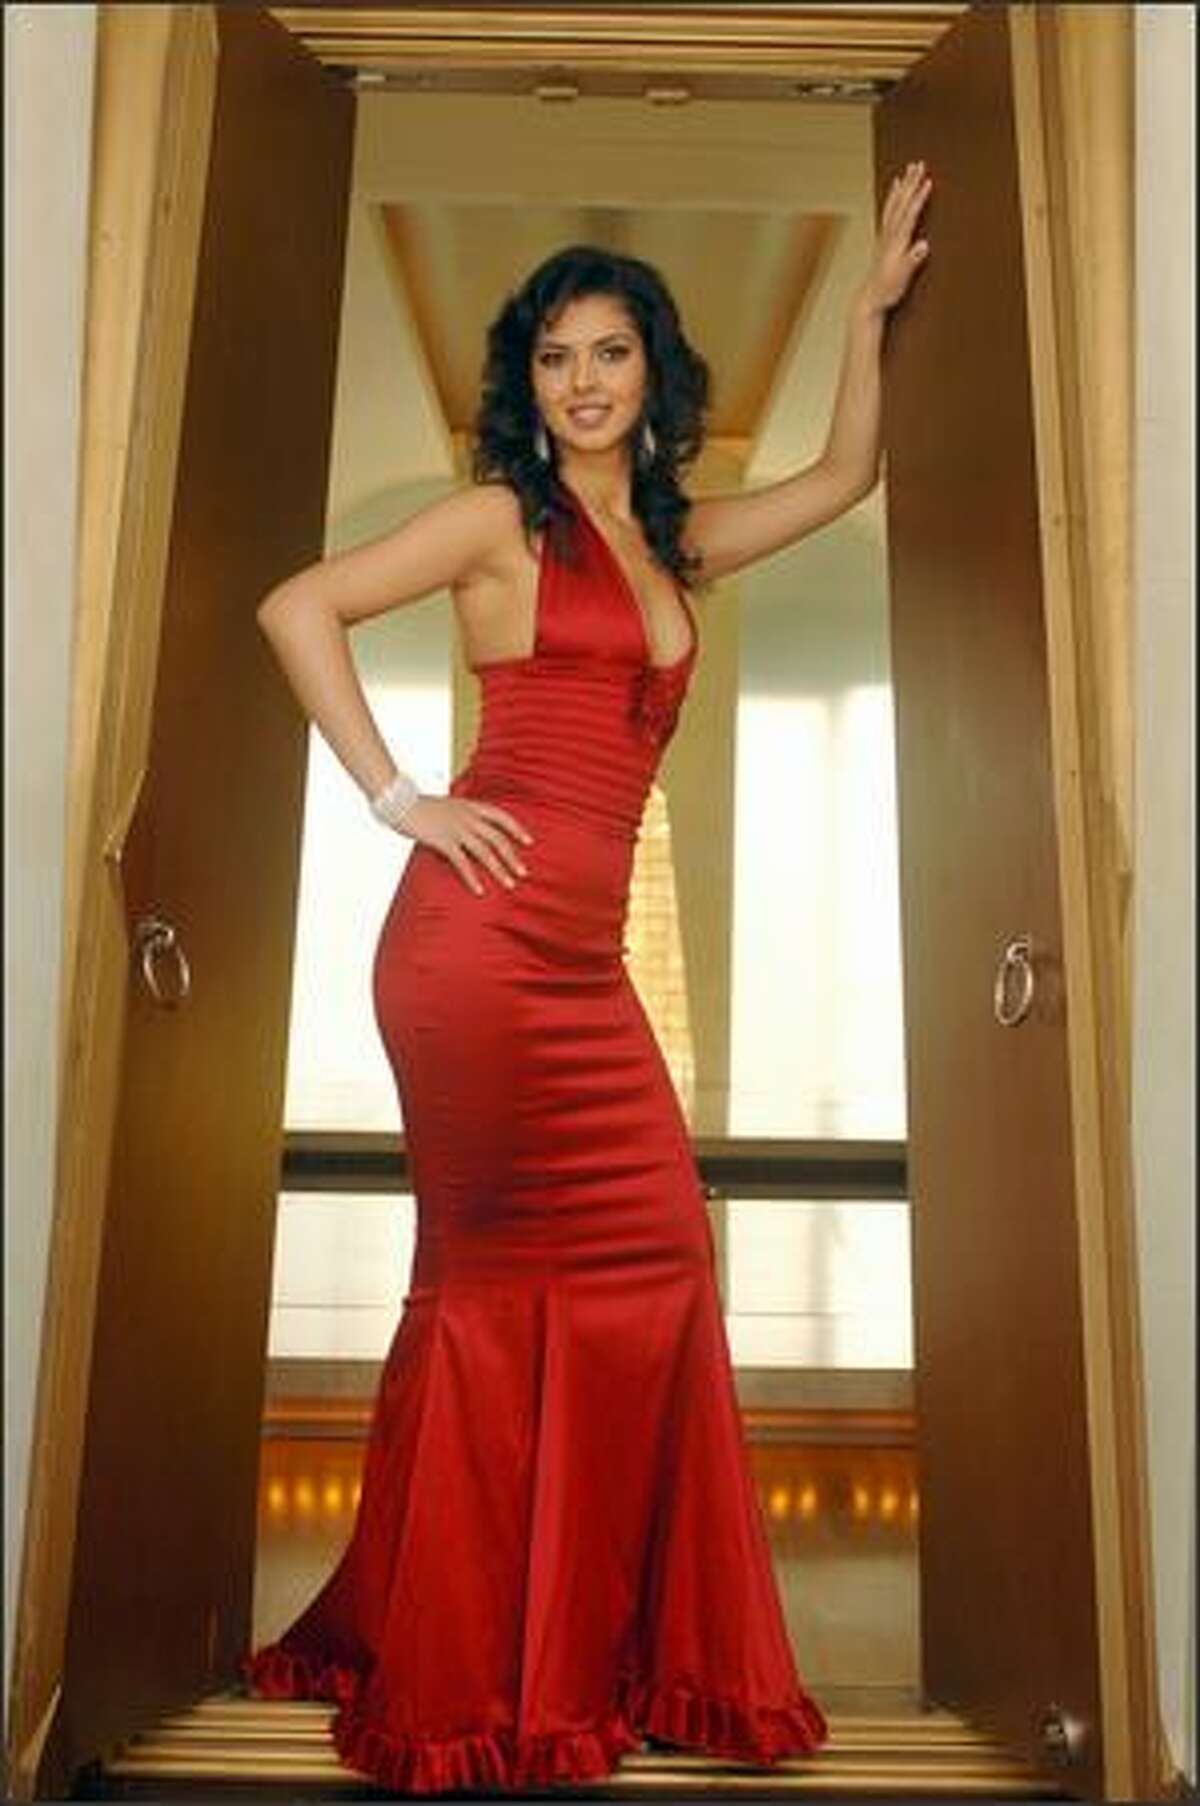 Agnesë Vuthaj, Miss Albania, poses in an evening gown at the Devarana Spa at the Dusit Thani hotel during registration and fittings for the Miss Universe 2005 competition in Bangkok, Thailand on May 11. The 54th annual Miss Universe competition will take place in Bangkok on May 31 (May 30 in U.S. time zones) and will be televised by NBC at 9 p.m. Pacific time on a tape-delayed basis.